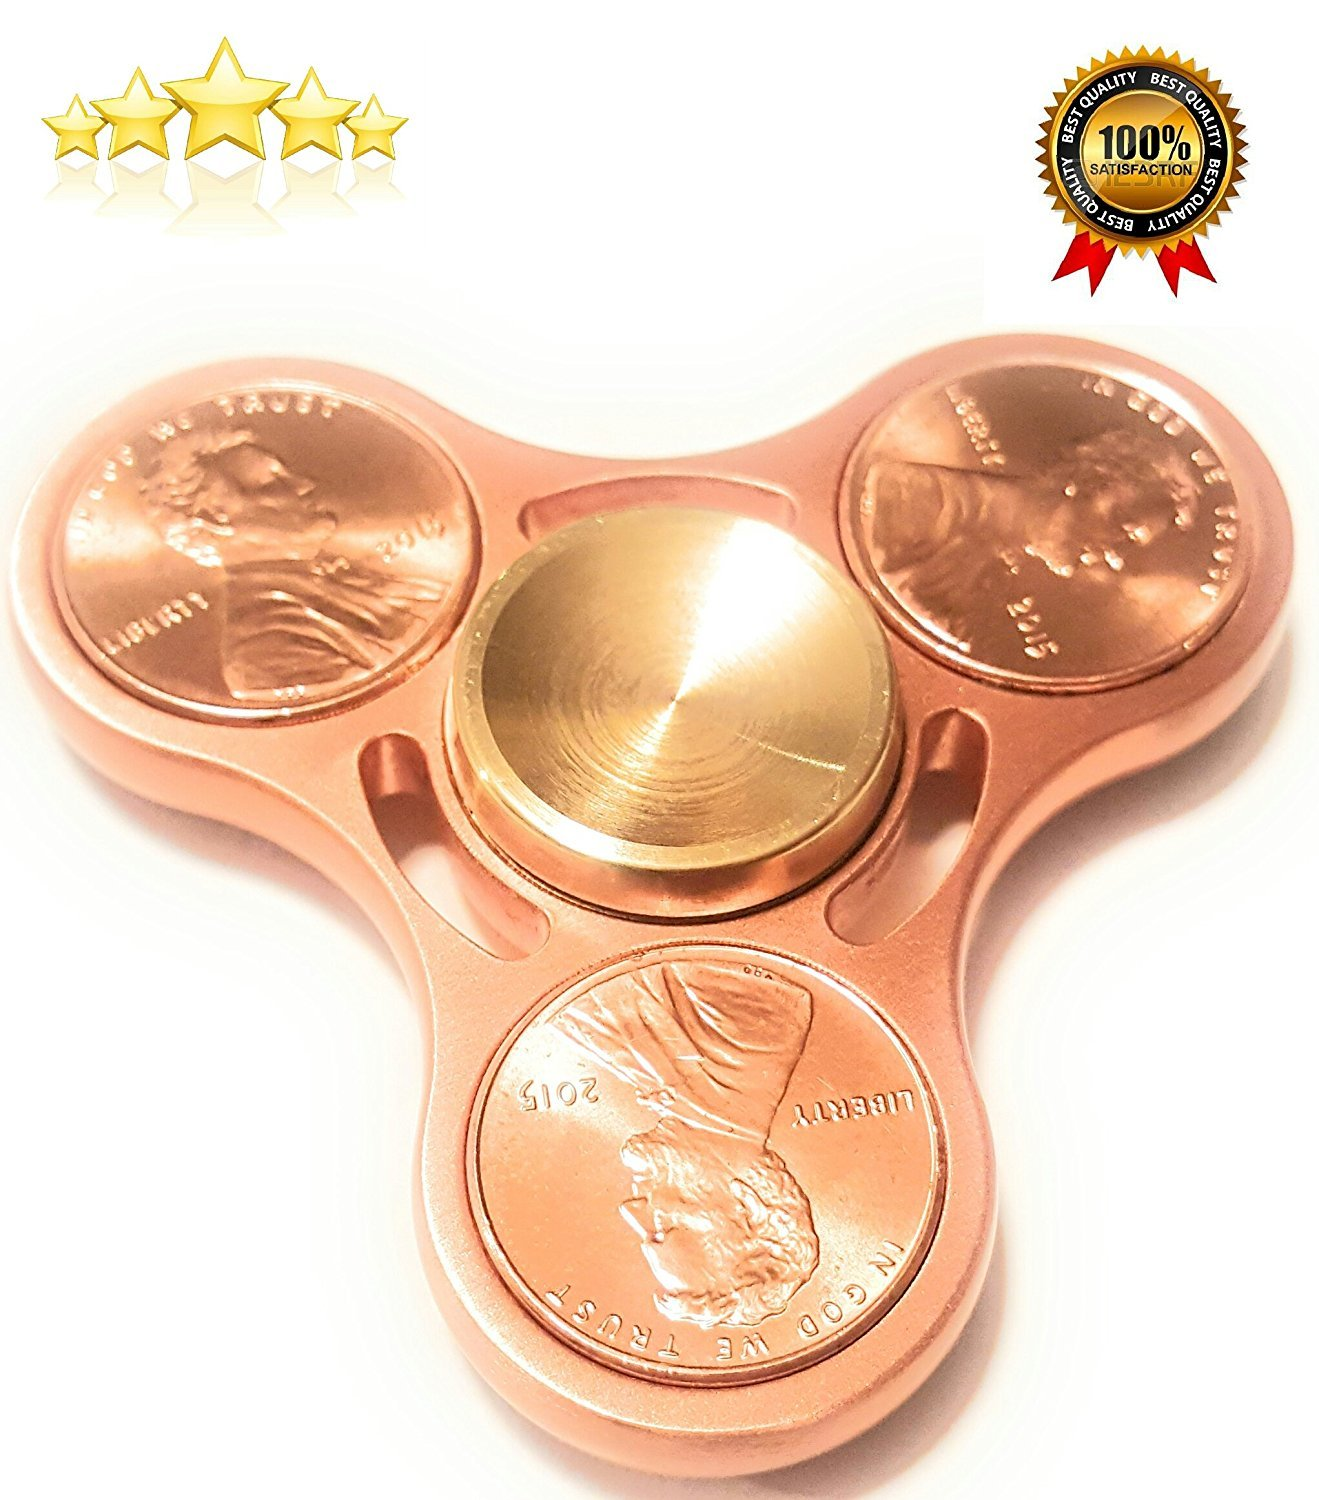 HAND SPINNER FIDGET PRIME METAL EDC TOY ADHD 100 % COPPER PLUS ULTRA DURABLE BEST HIGH SPEED RUNNER PRODUCT RUN UP BETWEEN 4 TO 5 MINUTES TOYS FOR (CHILDREN & ADULTS) GOLD